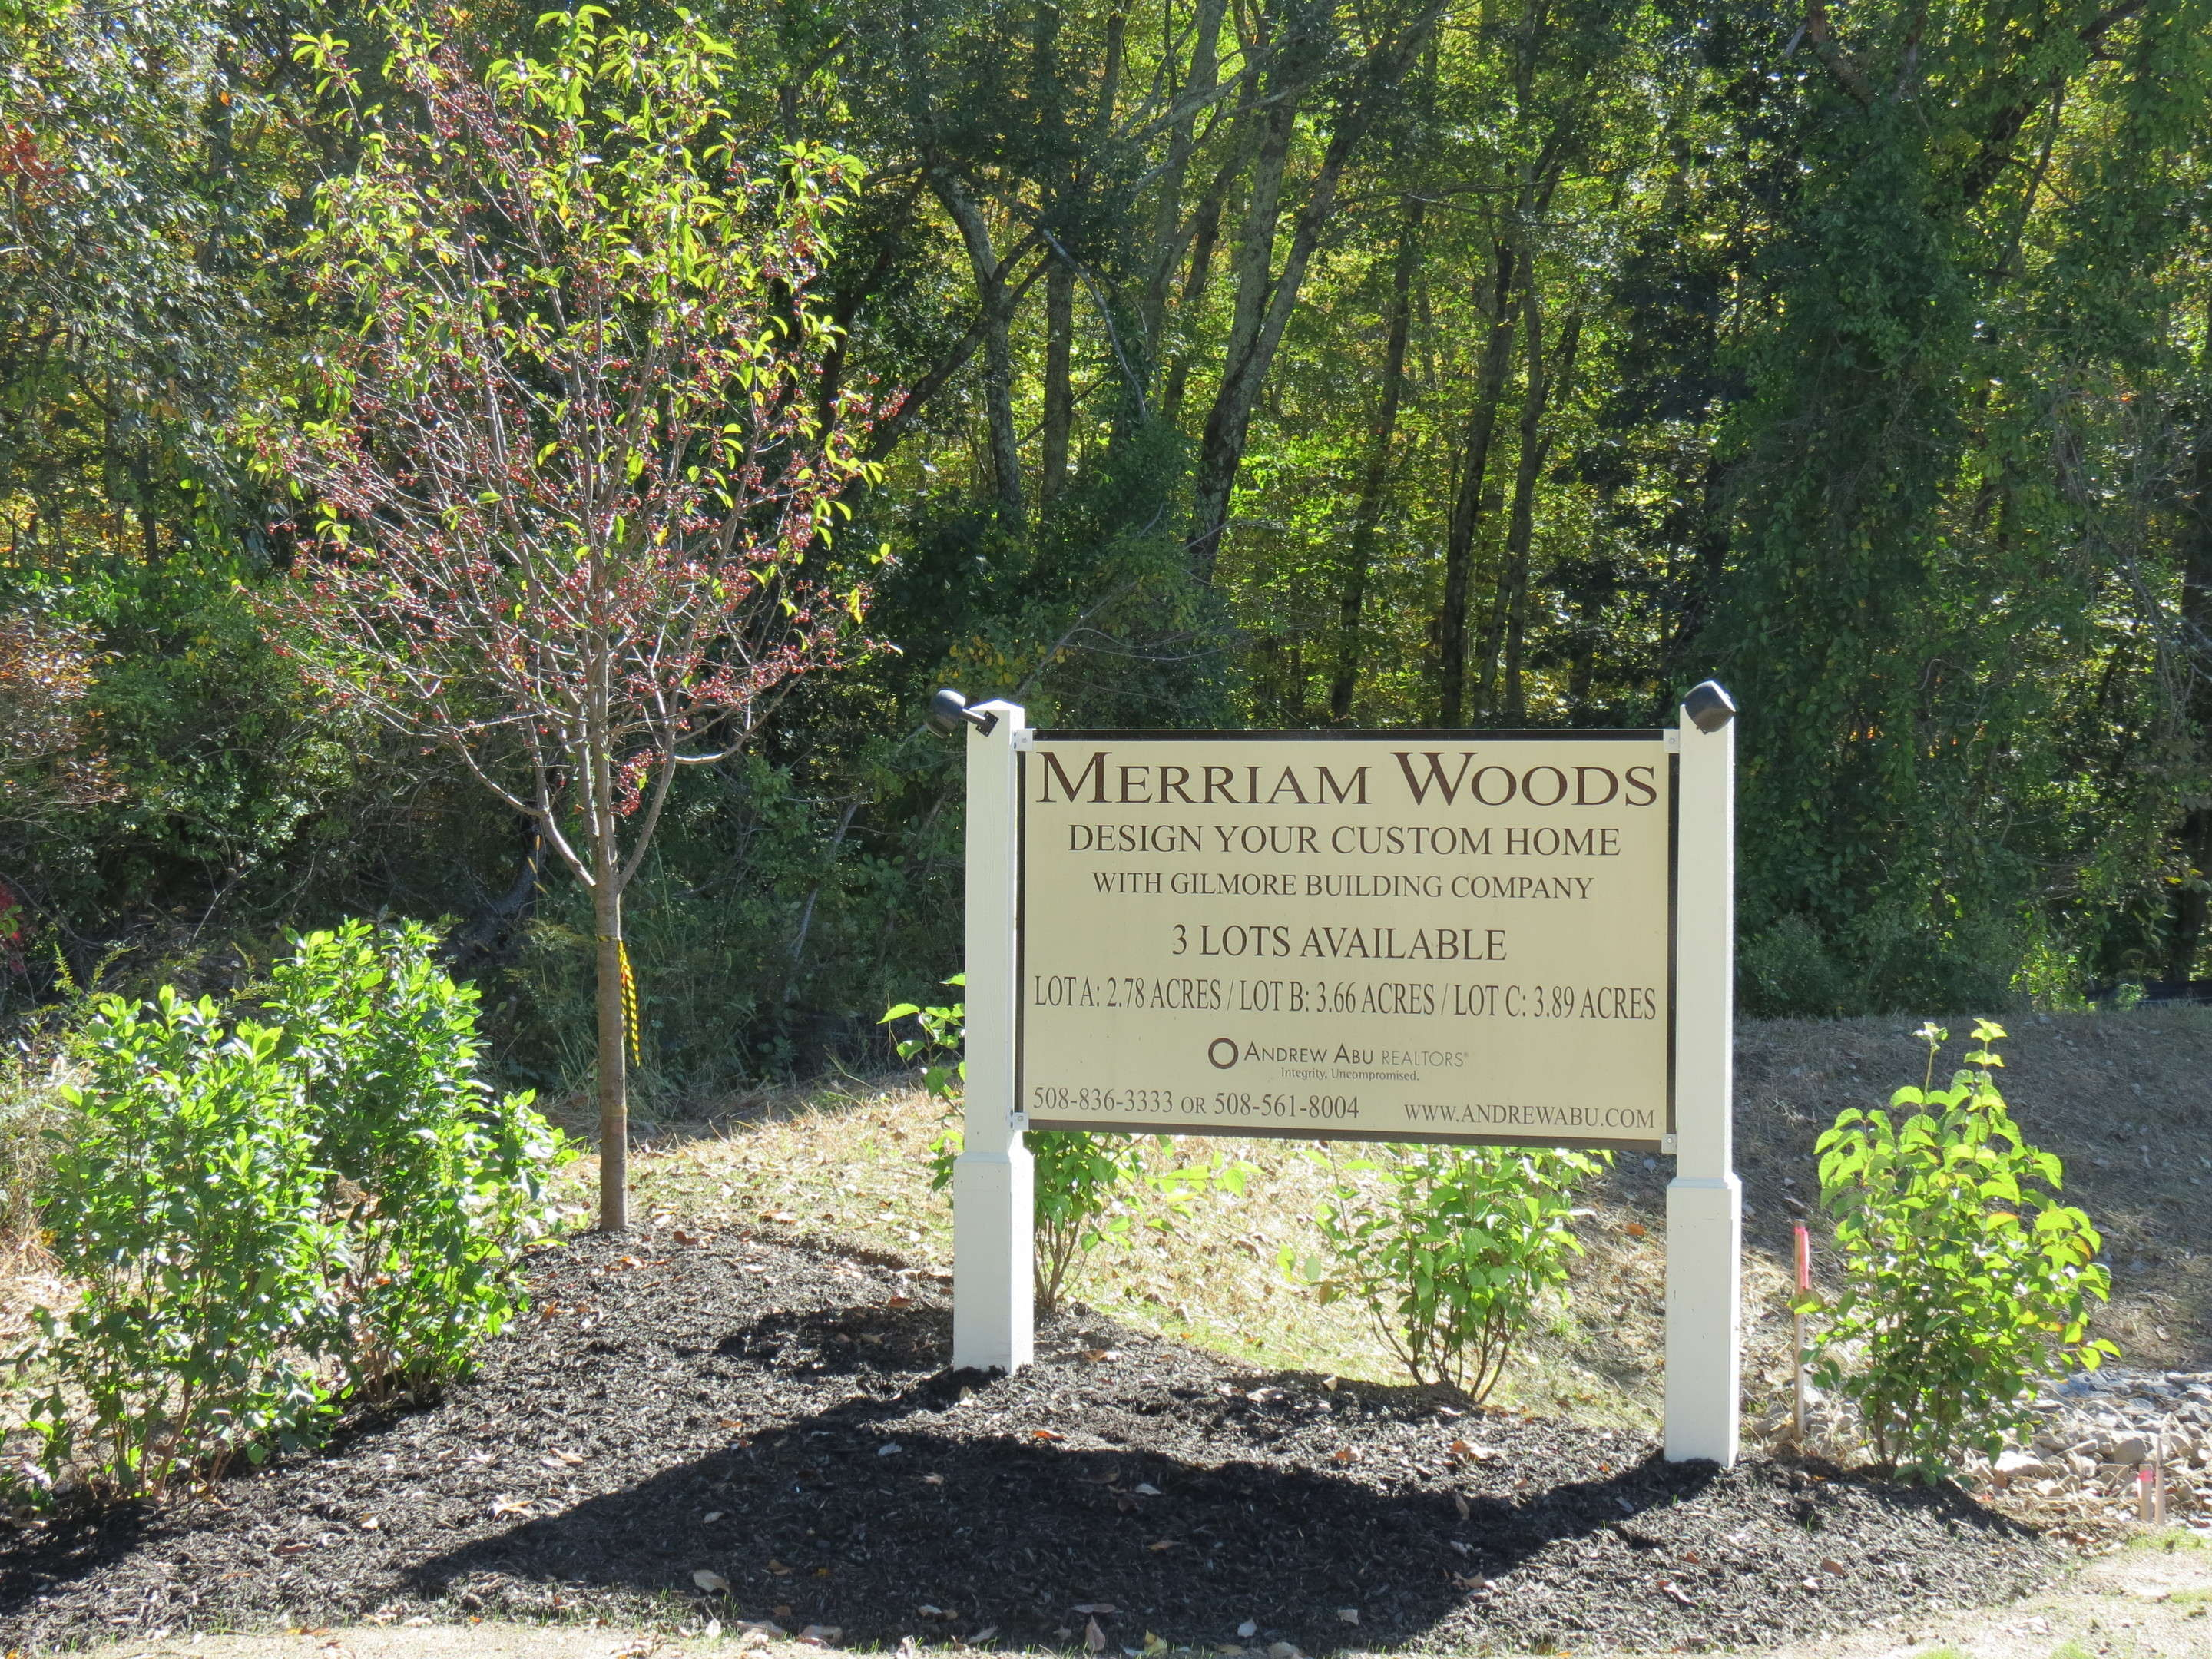 Entrance sign to Merriam Woods